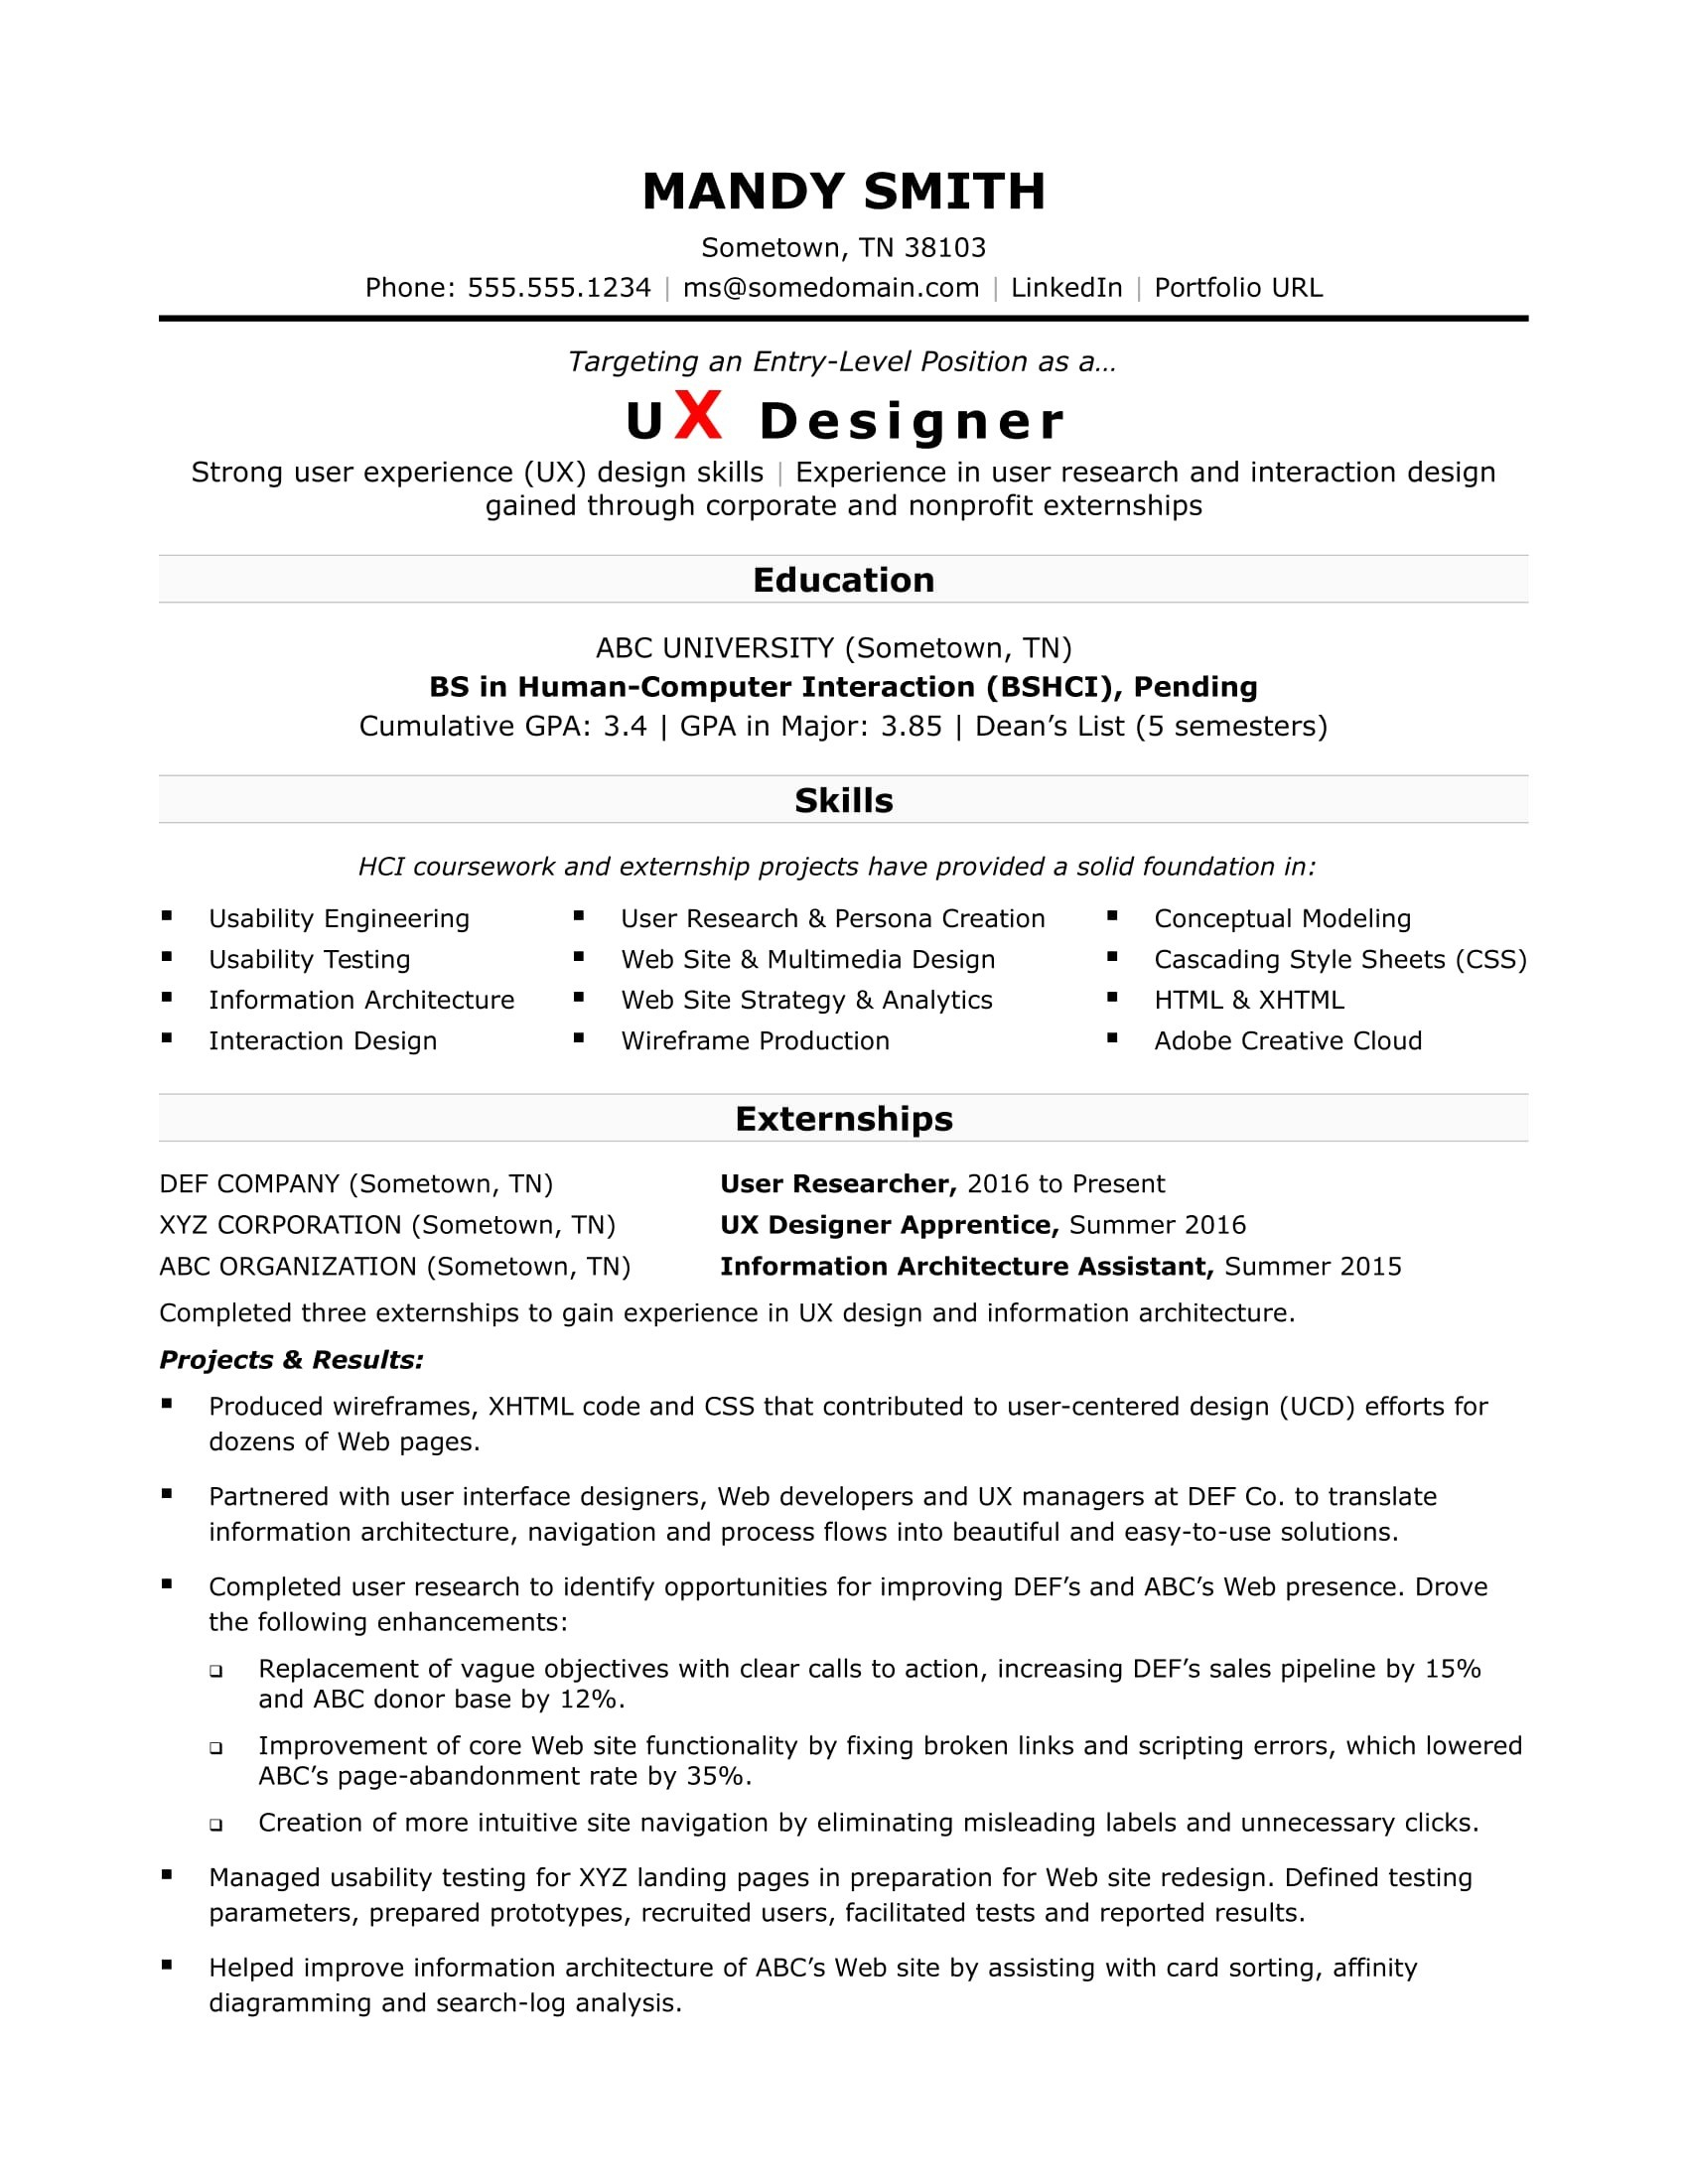 Ux Designer Resume - Web Researcher Refrence areas Expertise Resume Awesome Research